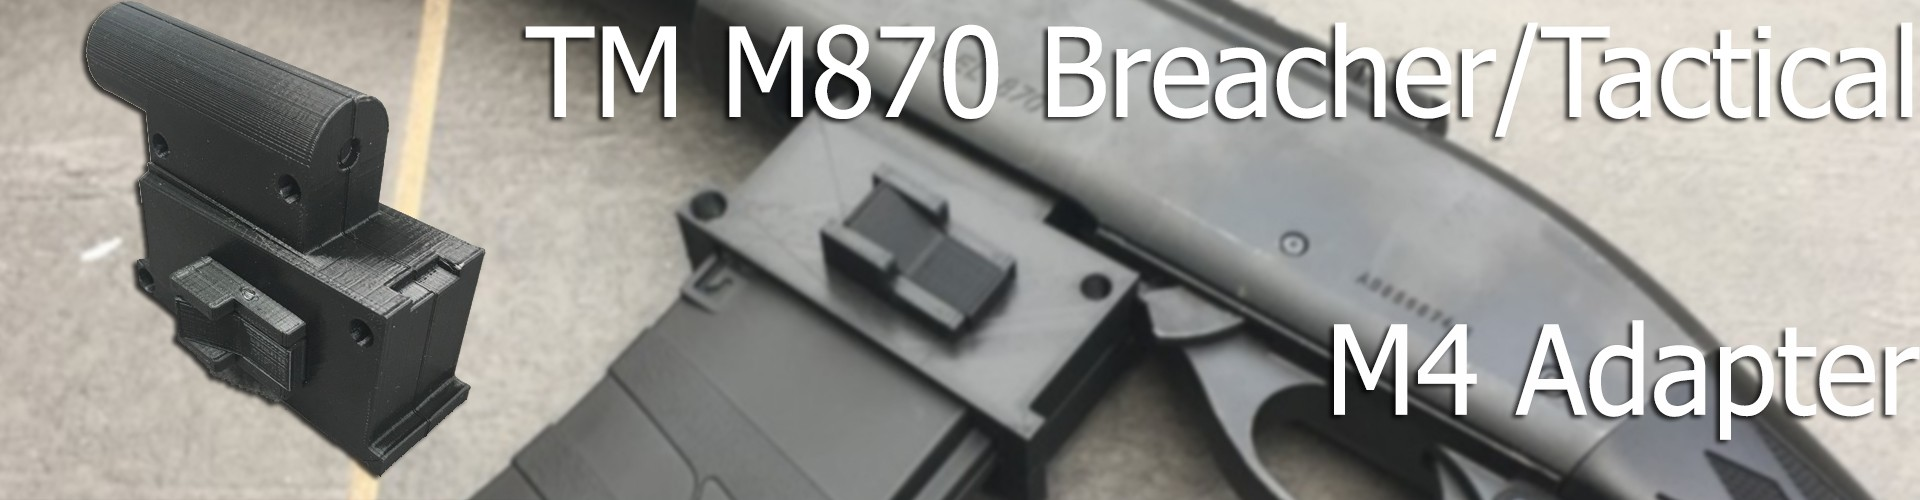 TM M870 M4 Adapter